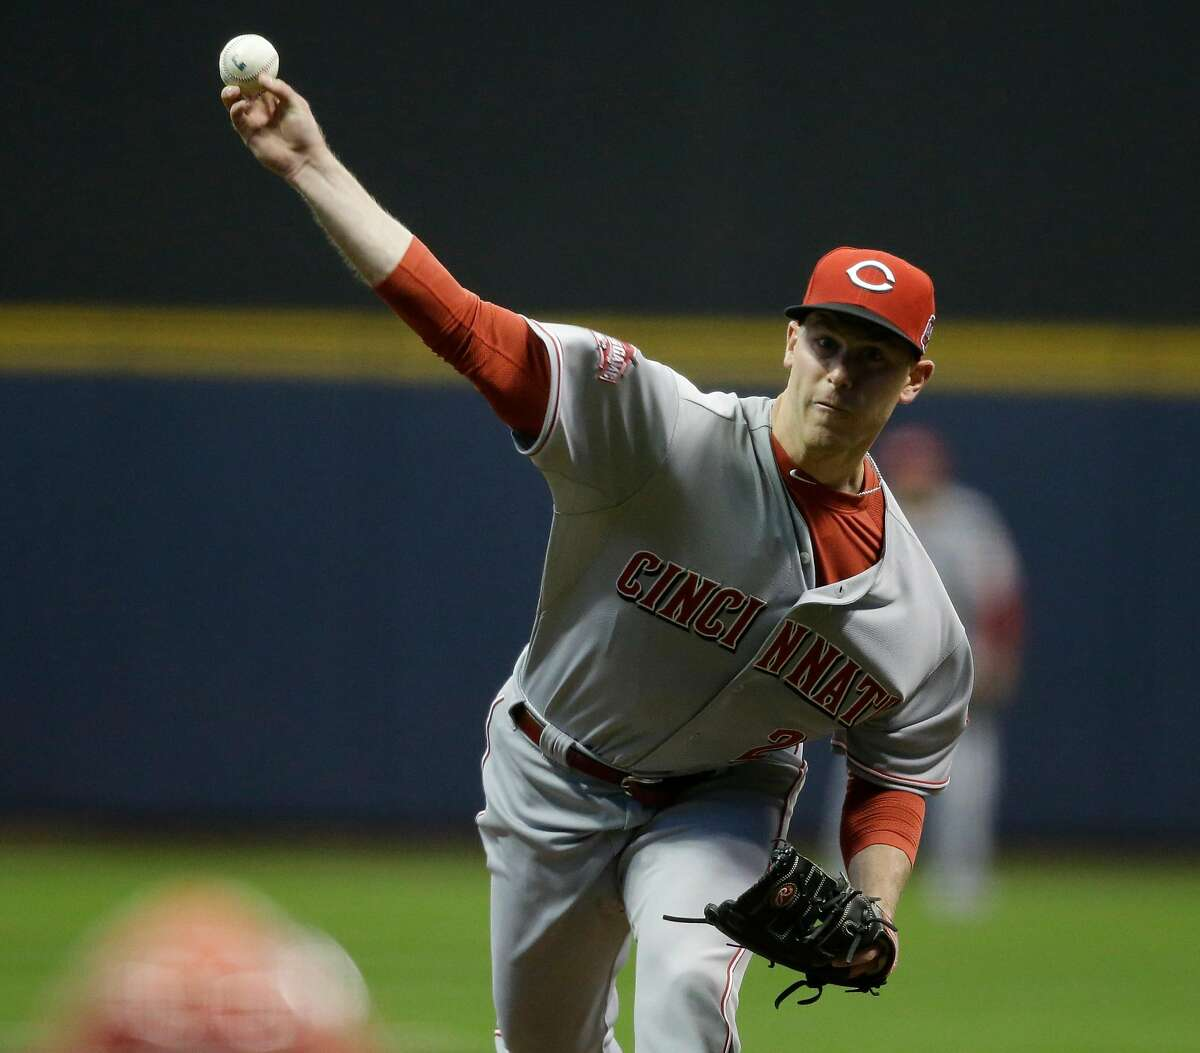 Cincinnati Reds starting pitcher Anthony Desclafani throws to the Milwaukee Brewers during the first inning of a baseball game Monday, April 20, 2015, in Milwaukee. (AP Photo/Jeffrey Phelps)